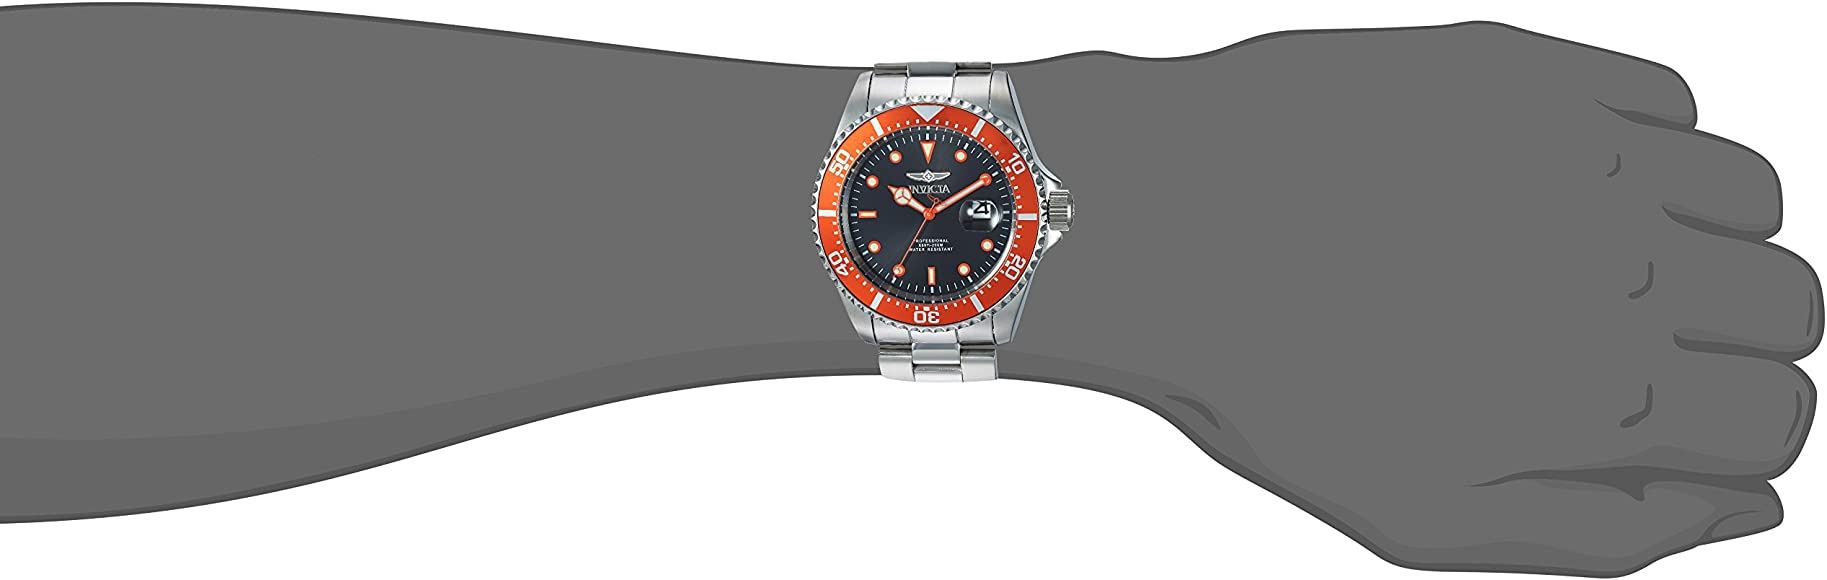 Invicta Men Pro Diver Quartz Diving Watch with StainlessSteel Strap Silver 9 Model 22022